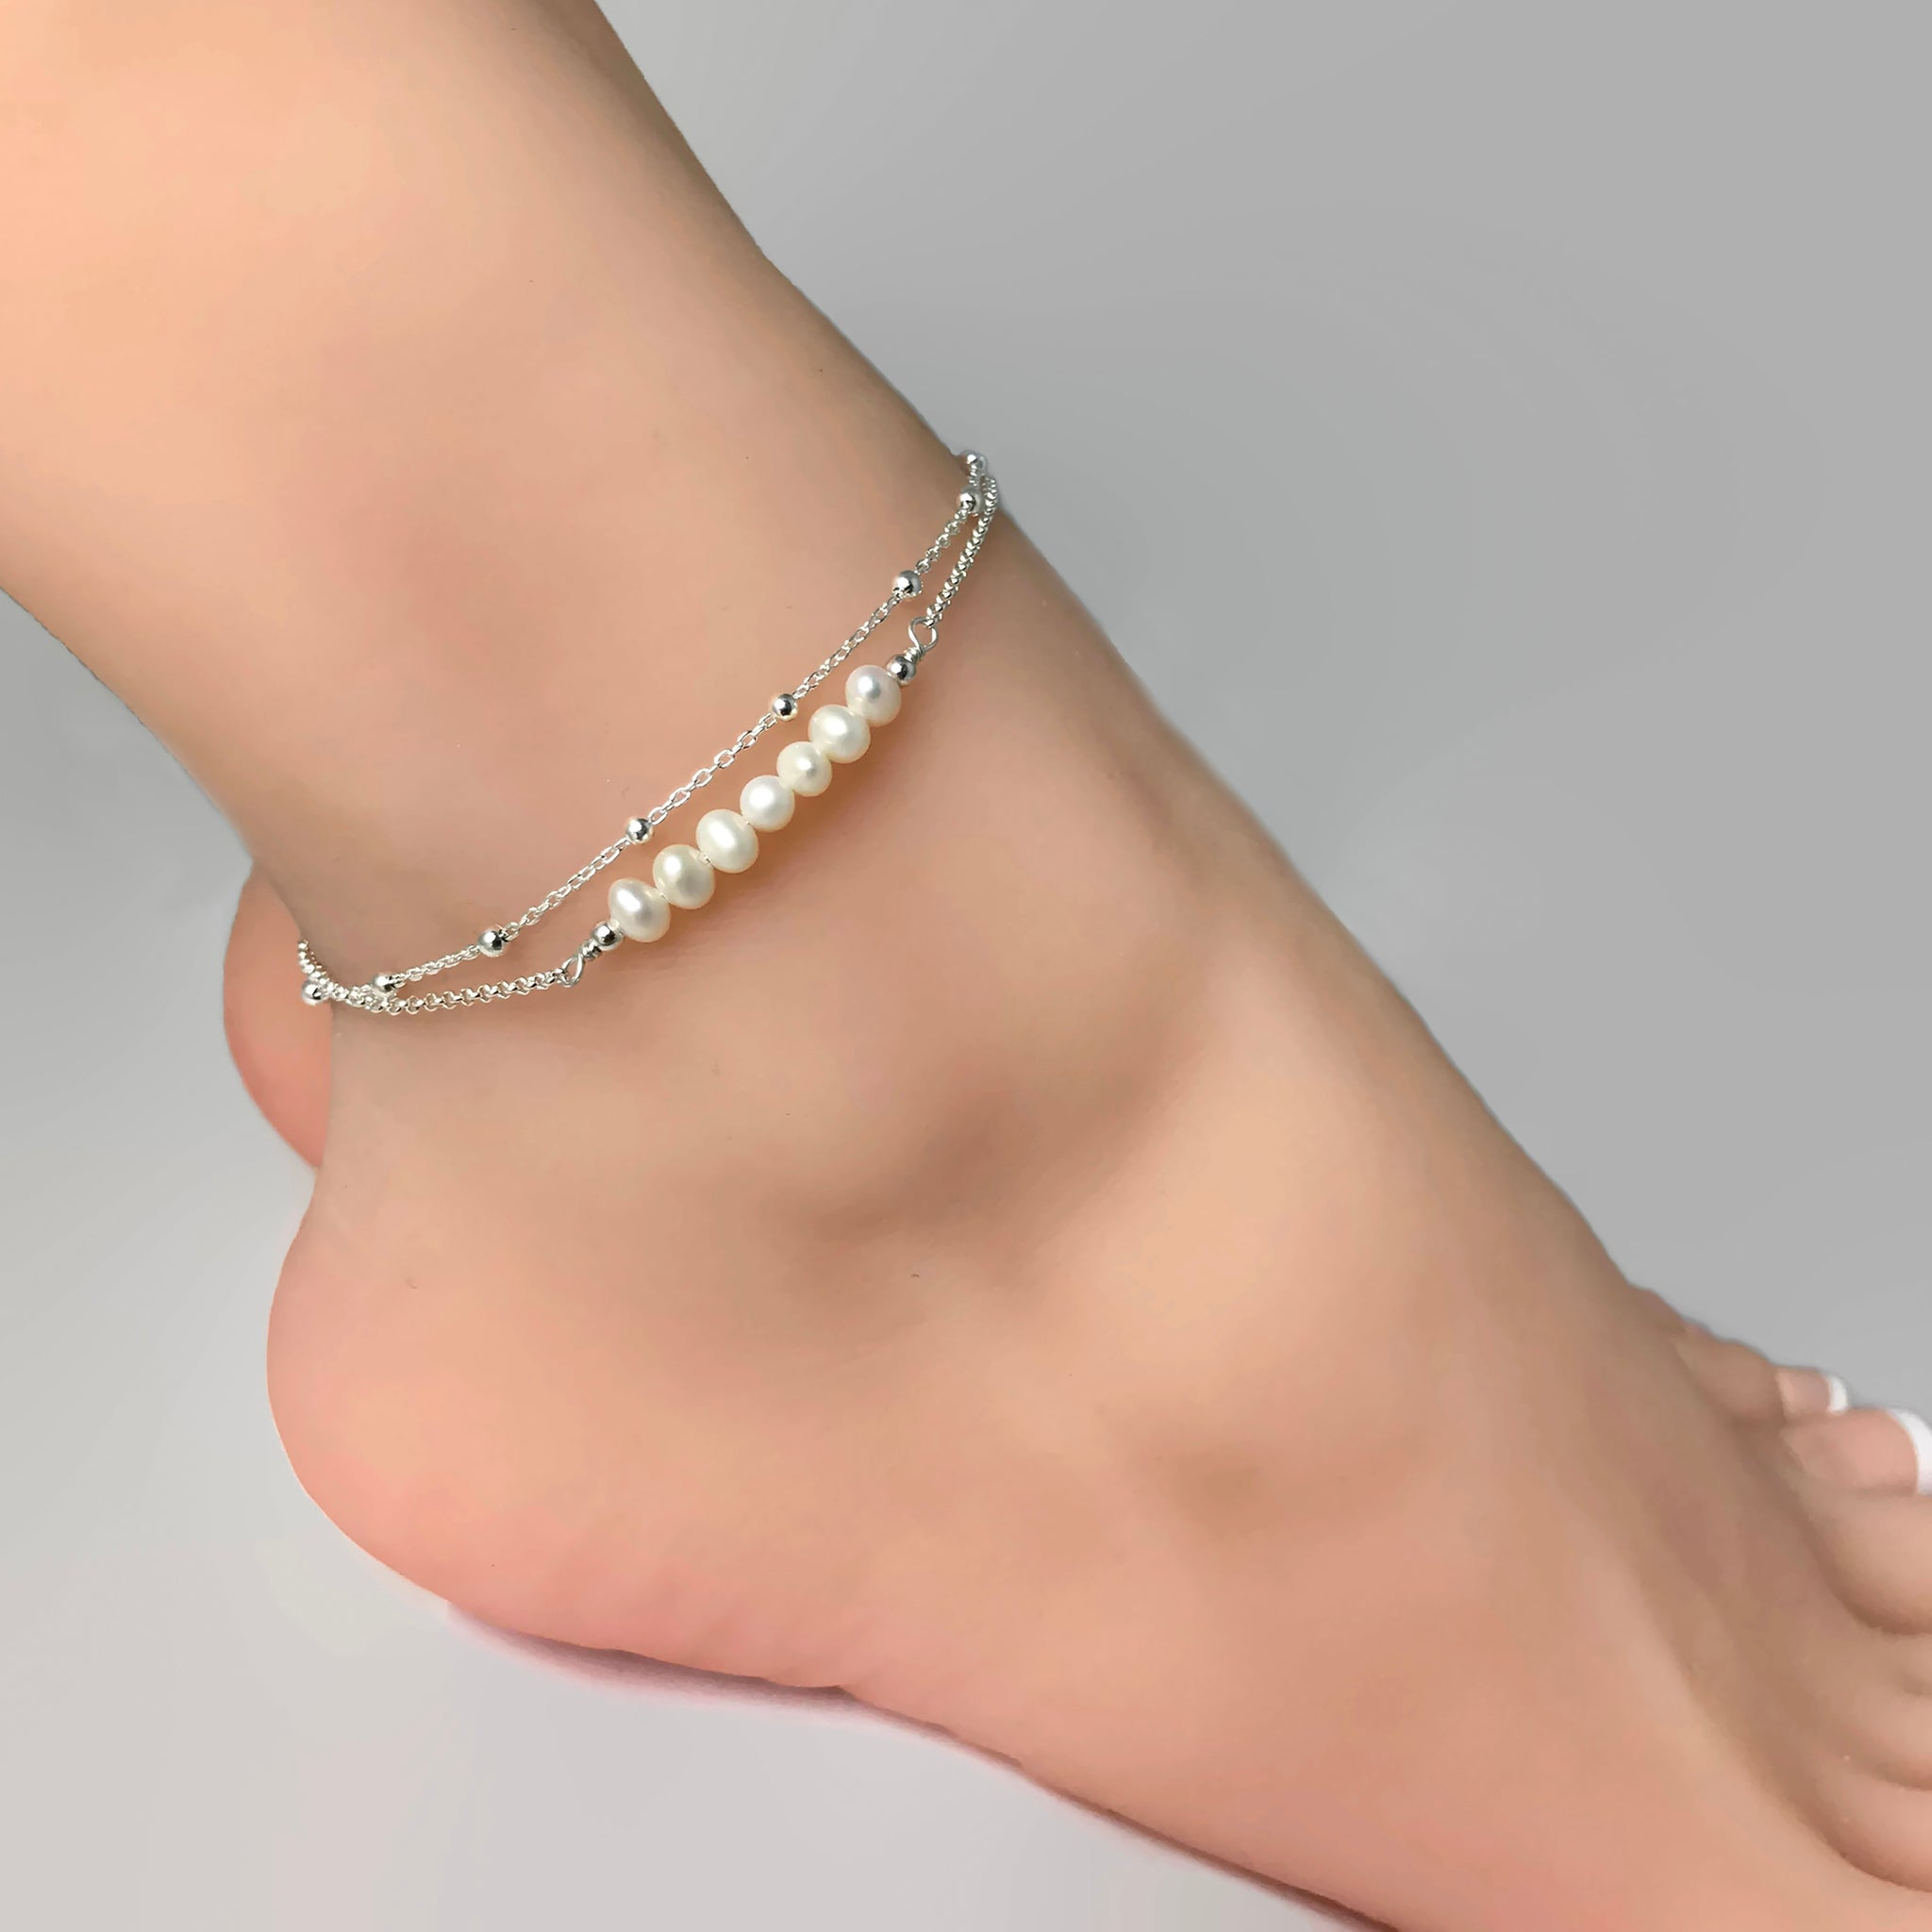 healing spiritual energy il listing lotus anklet success birthstone november citrine fullxfull